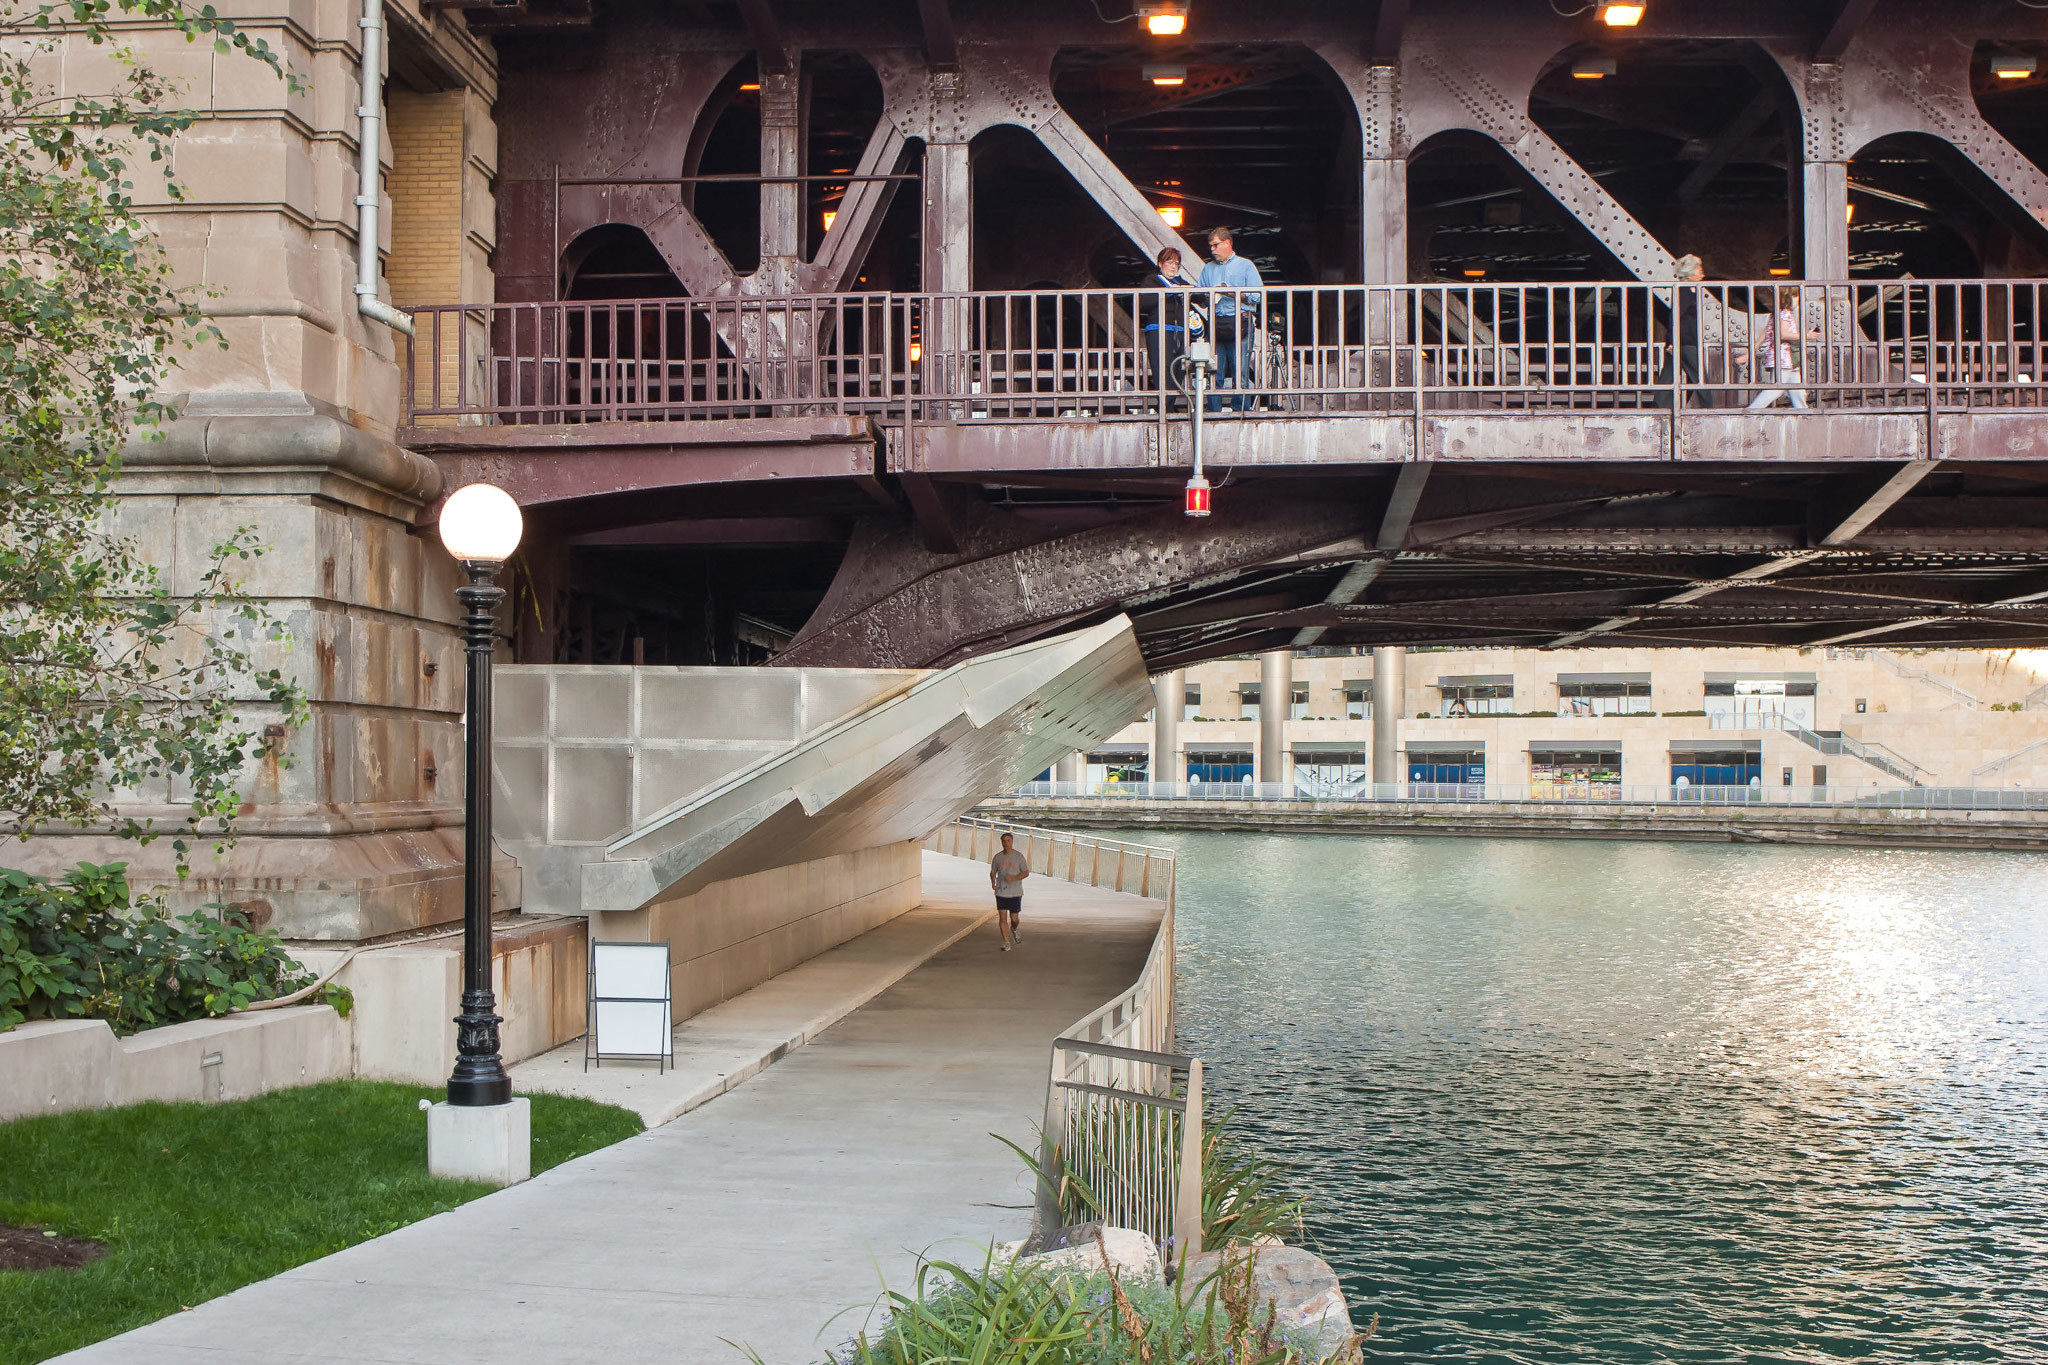 Take a stroll on the Riverwalk